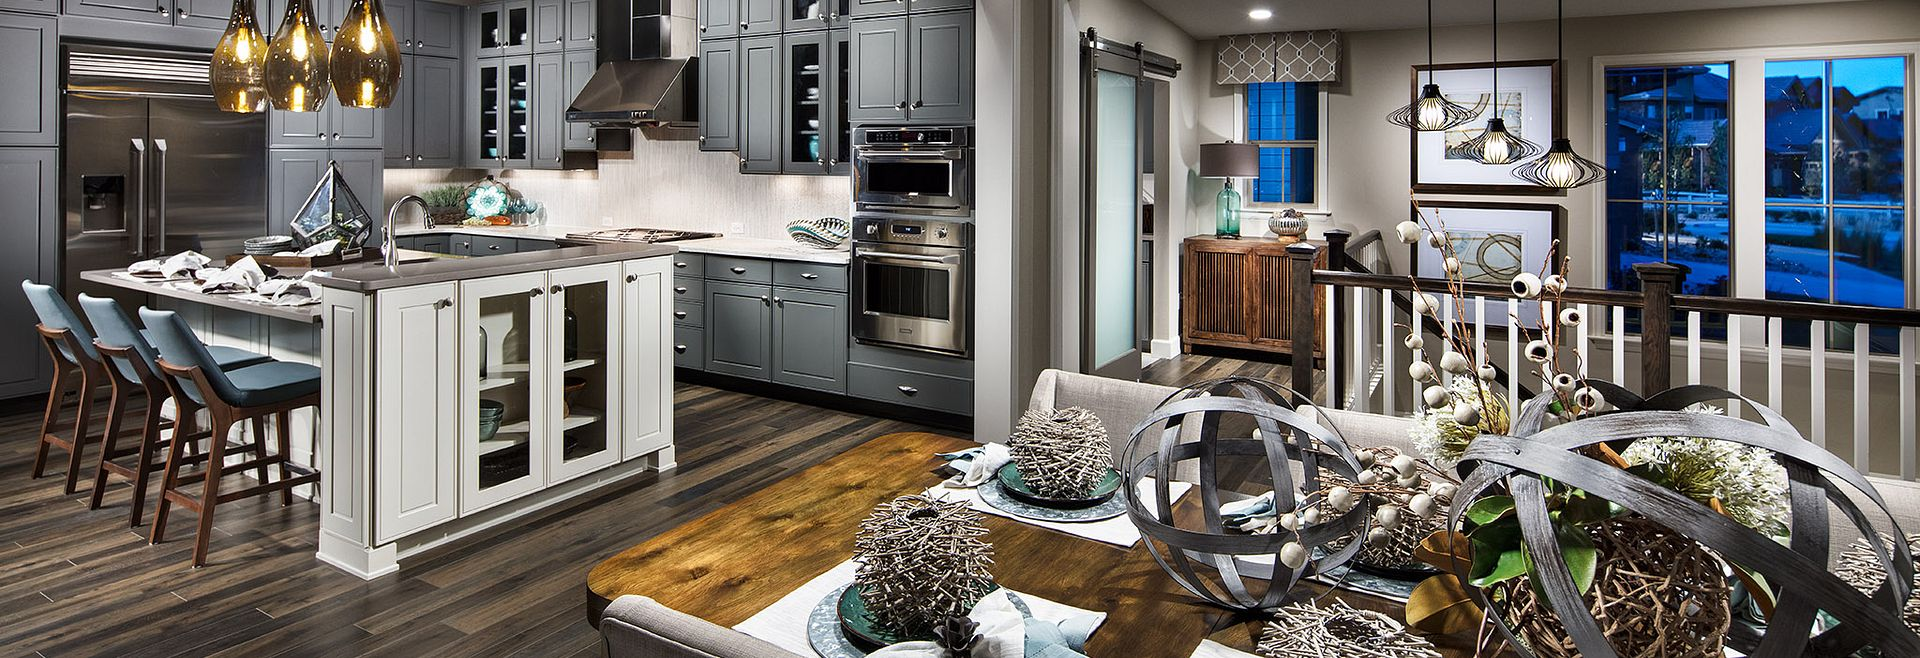 BackCountry Painted Sky Indigo Mist Kitchen